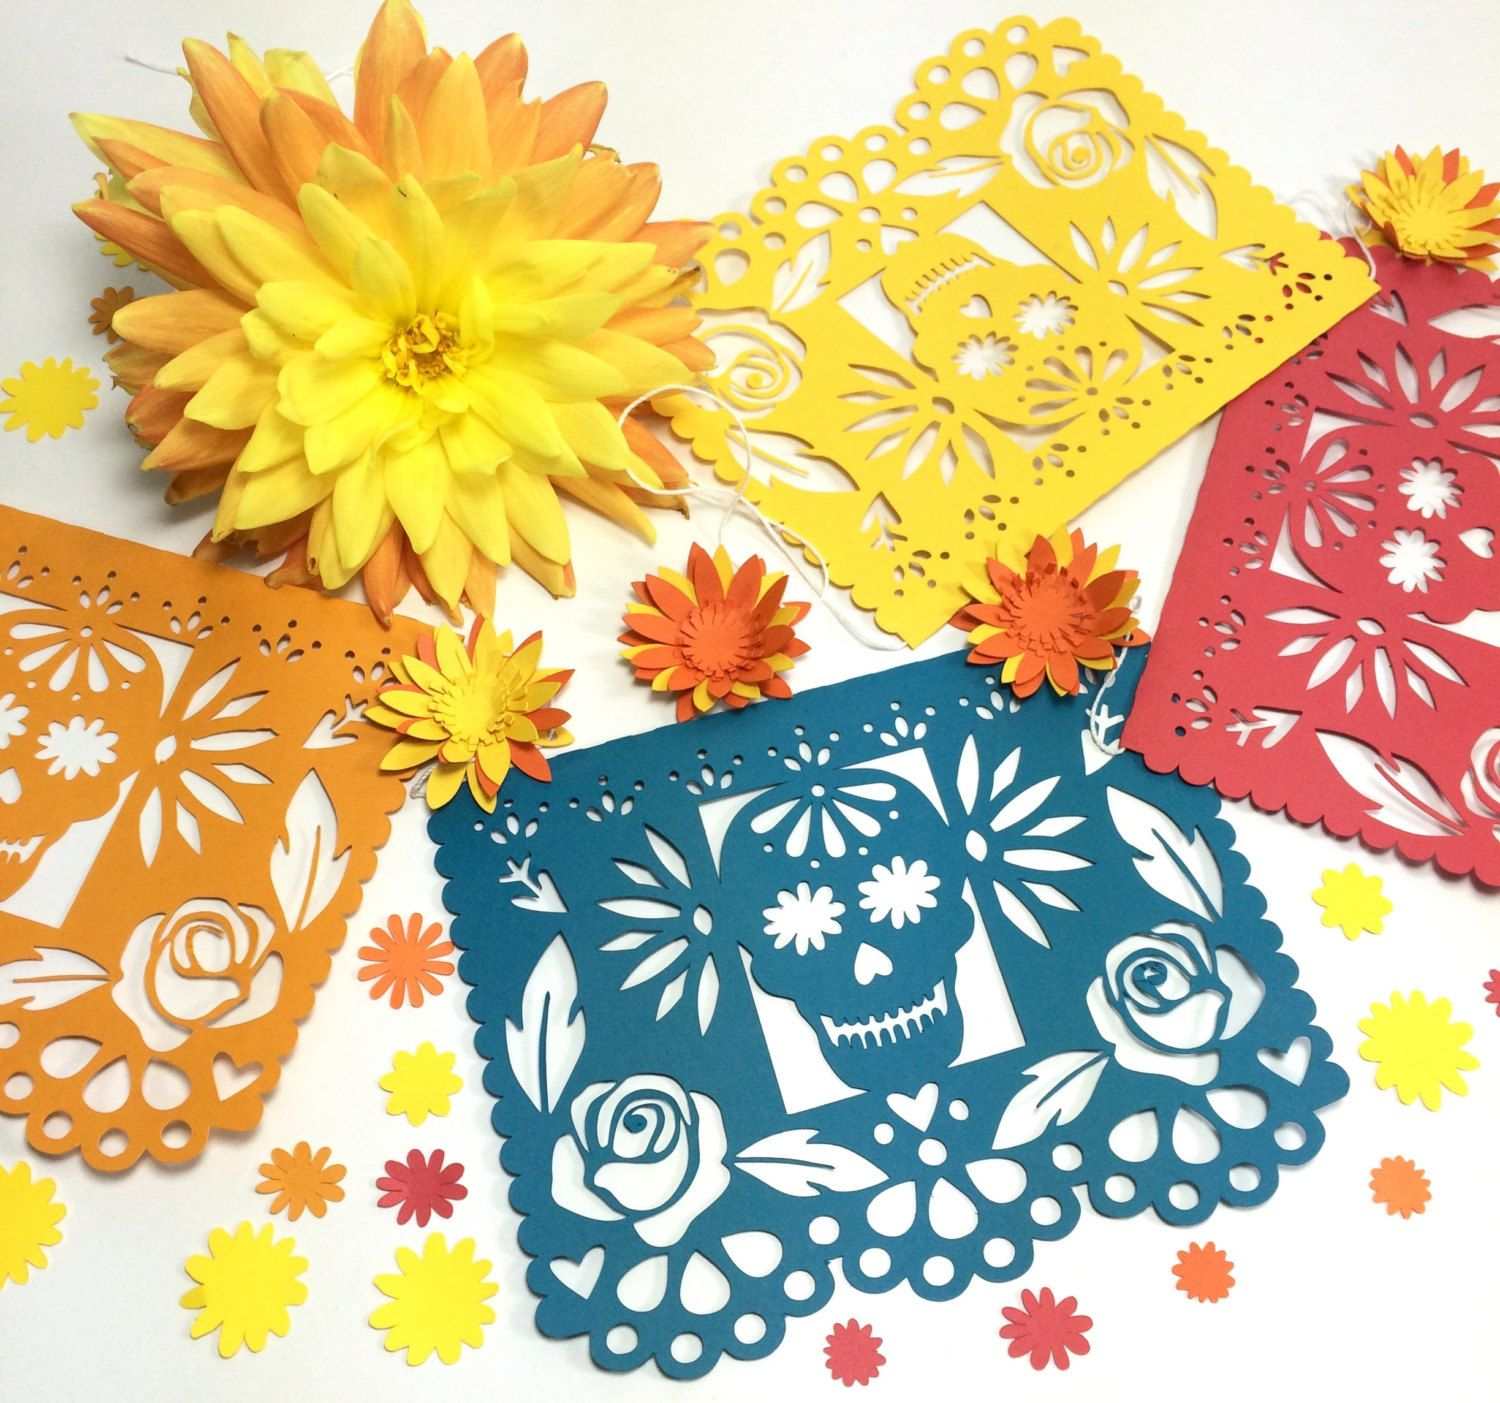 day of the dead decorations mexican dia de los muertos papel picado banner sugar